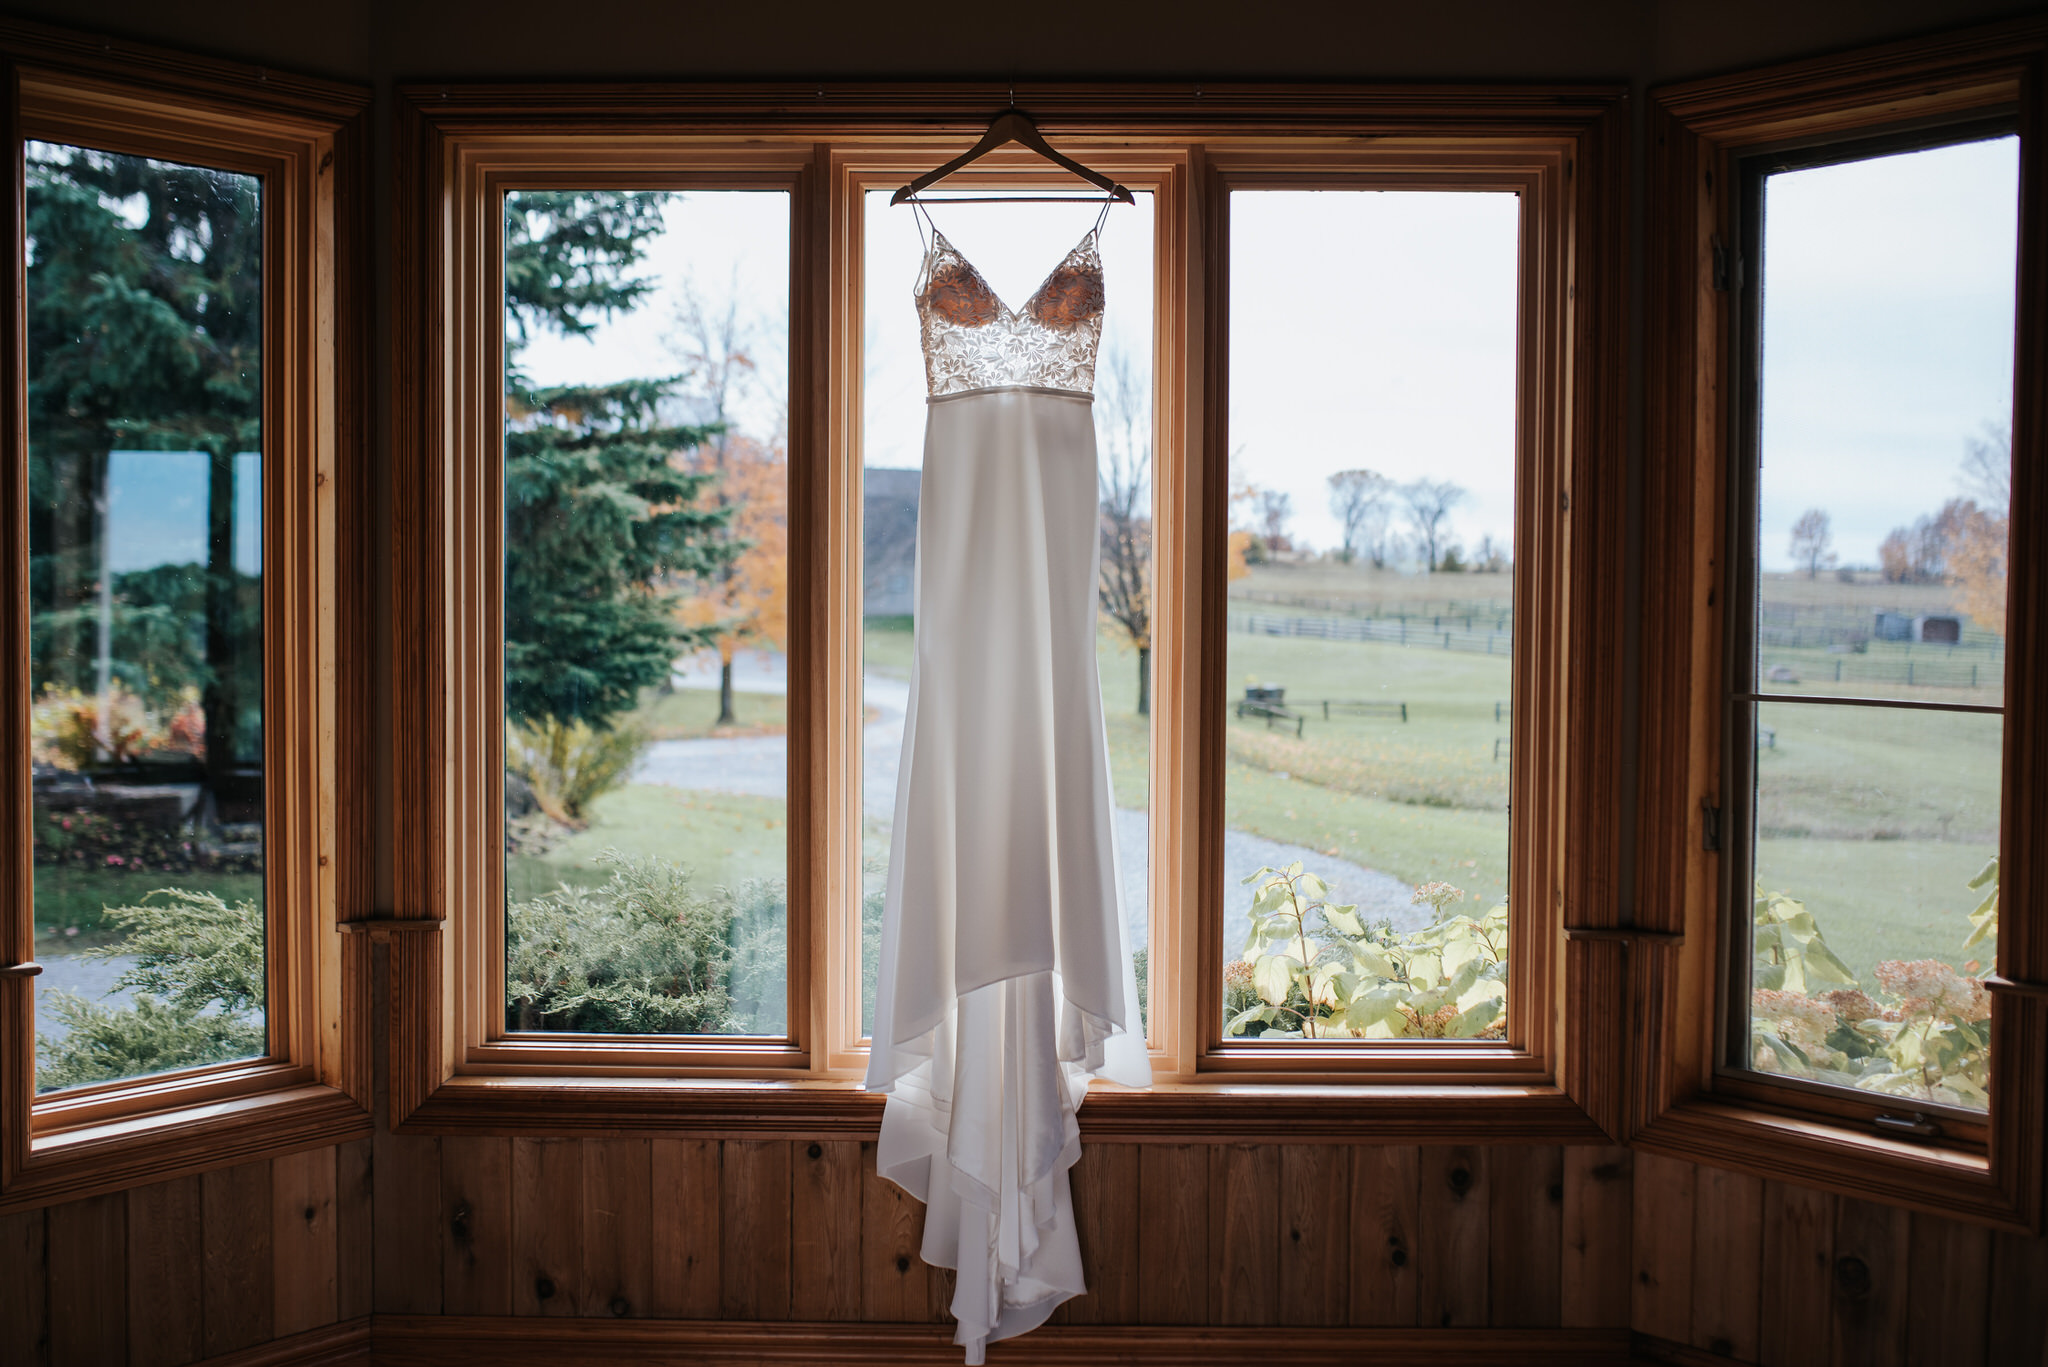 Waterstone Estate & Farms Wedding - Wedding Dress in Window